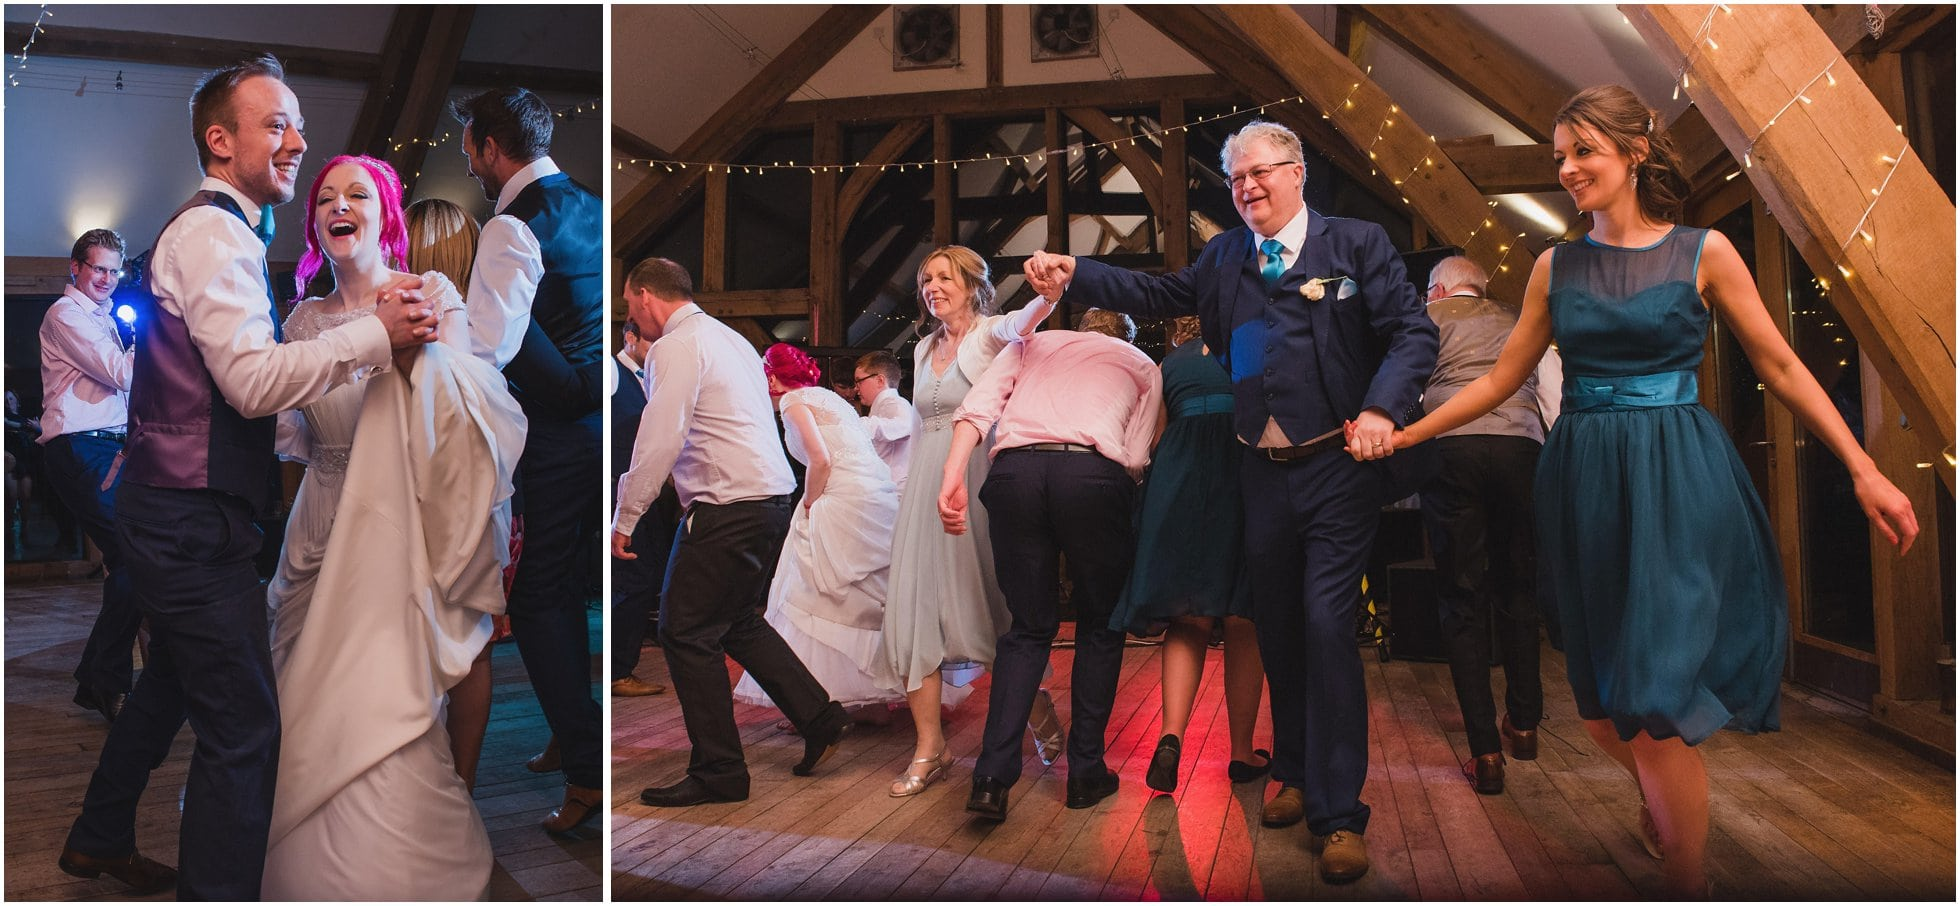 The happy couple and her parents dancing at this York wedding